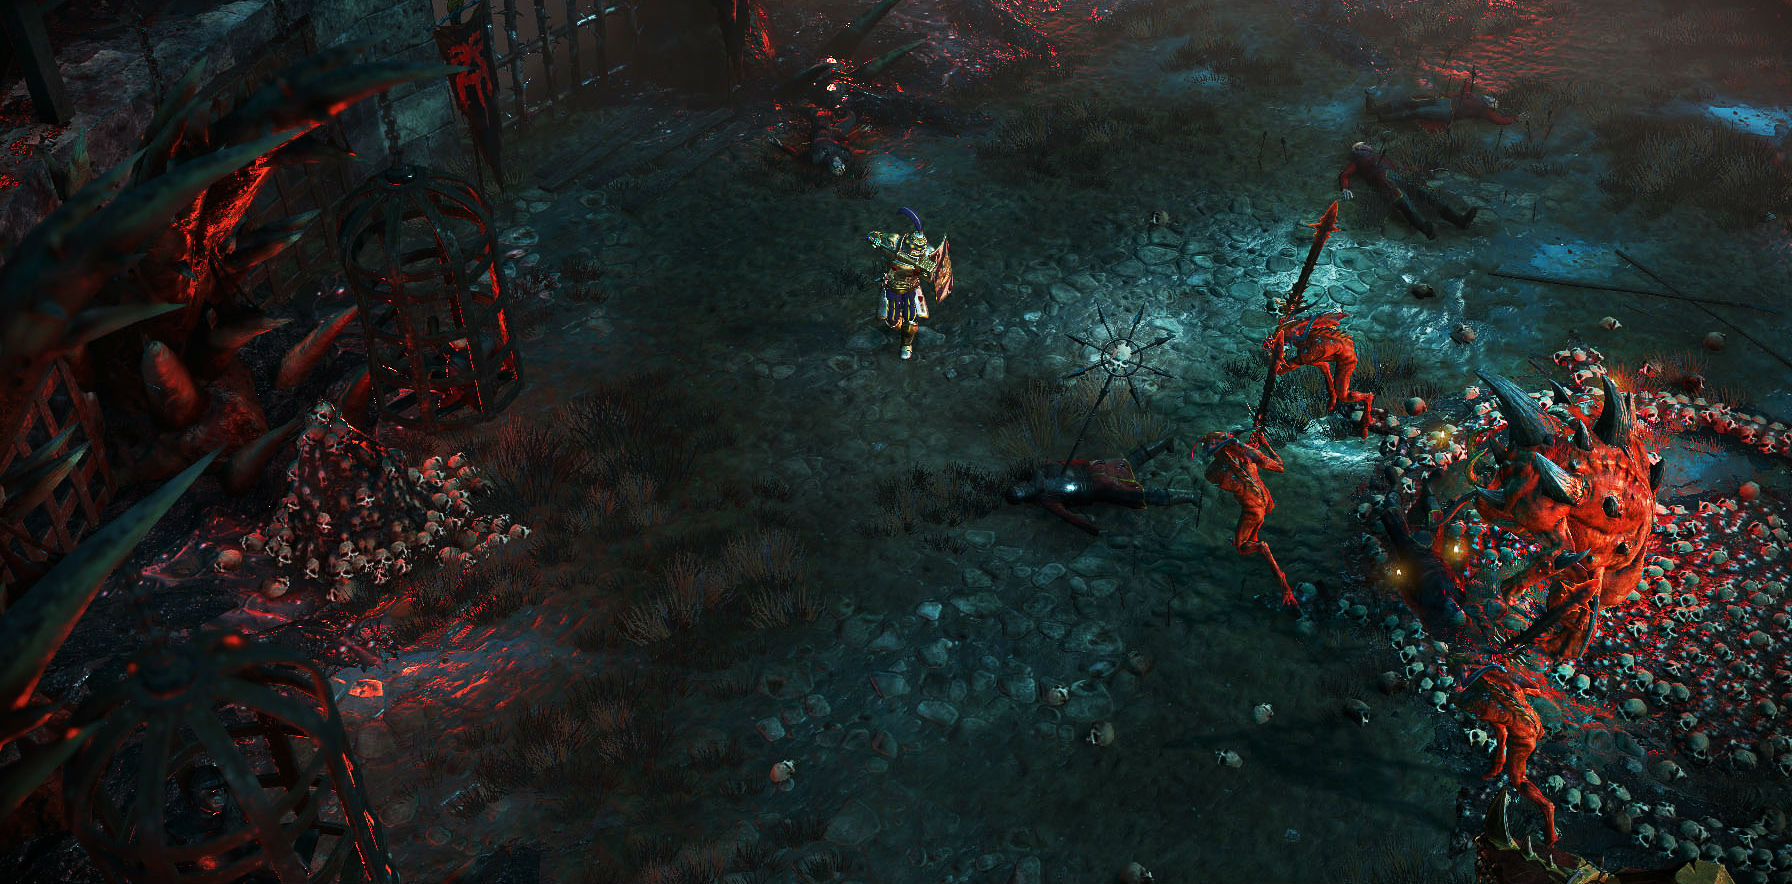 The next Warhammer game, Chaosbane, is a Diablo-esque action RPG for PC and consoles screenshot